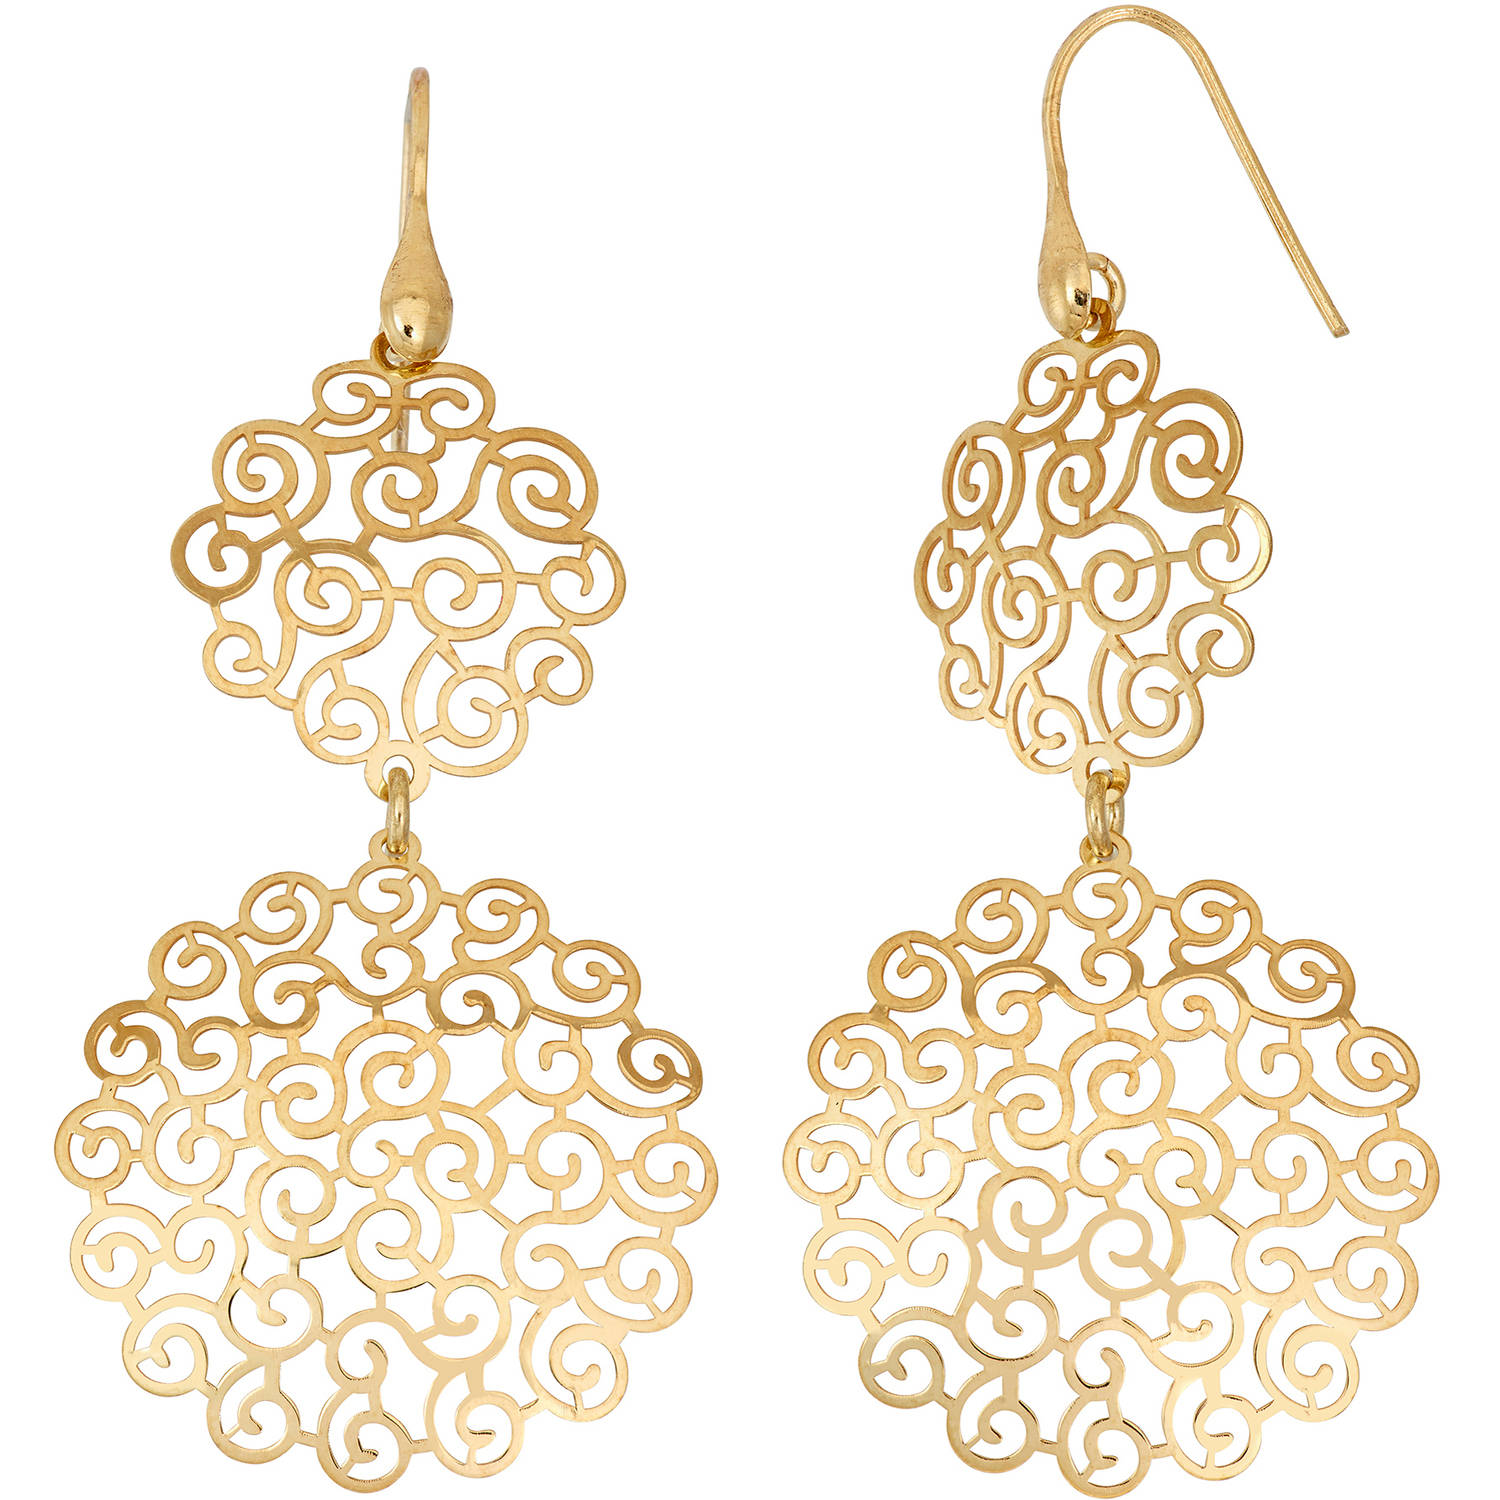 Giuliano Mameli 14kt Gold-Plated Sterling Silver Geometric Shape Cut-Out Dangle Earrings